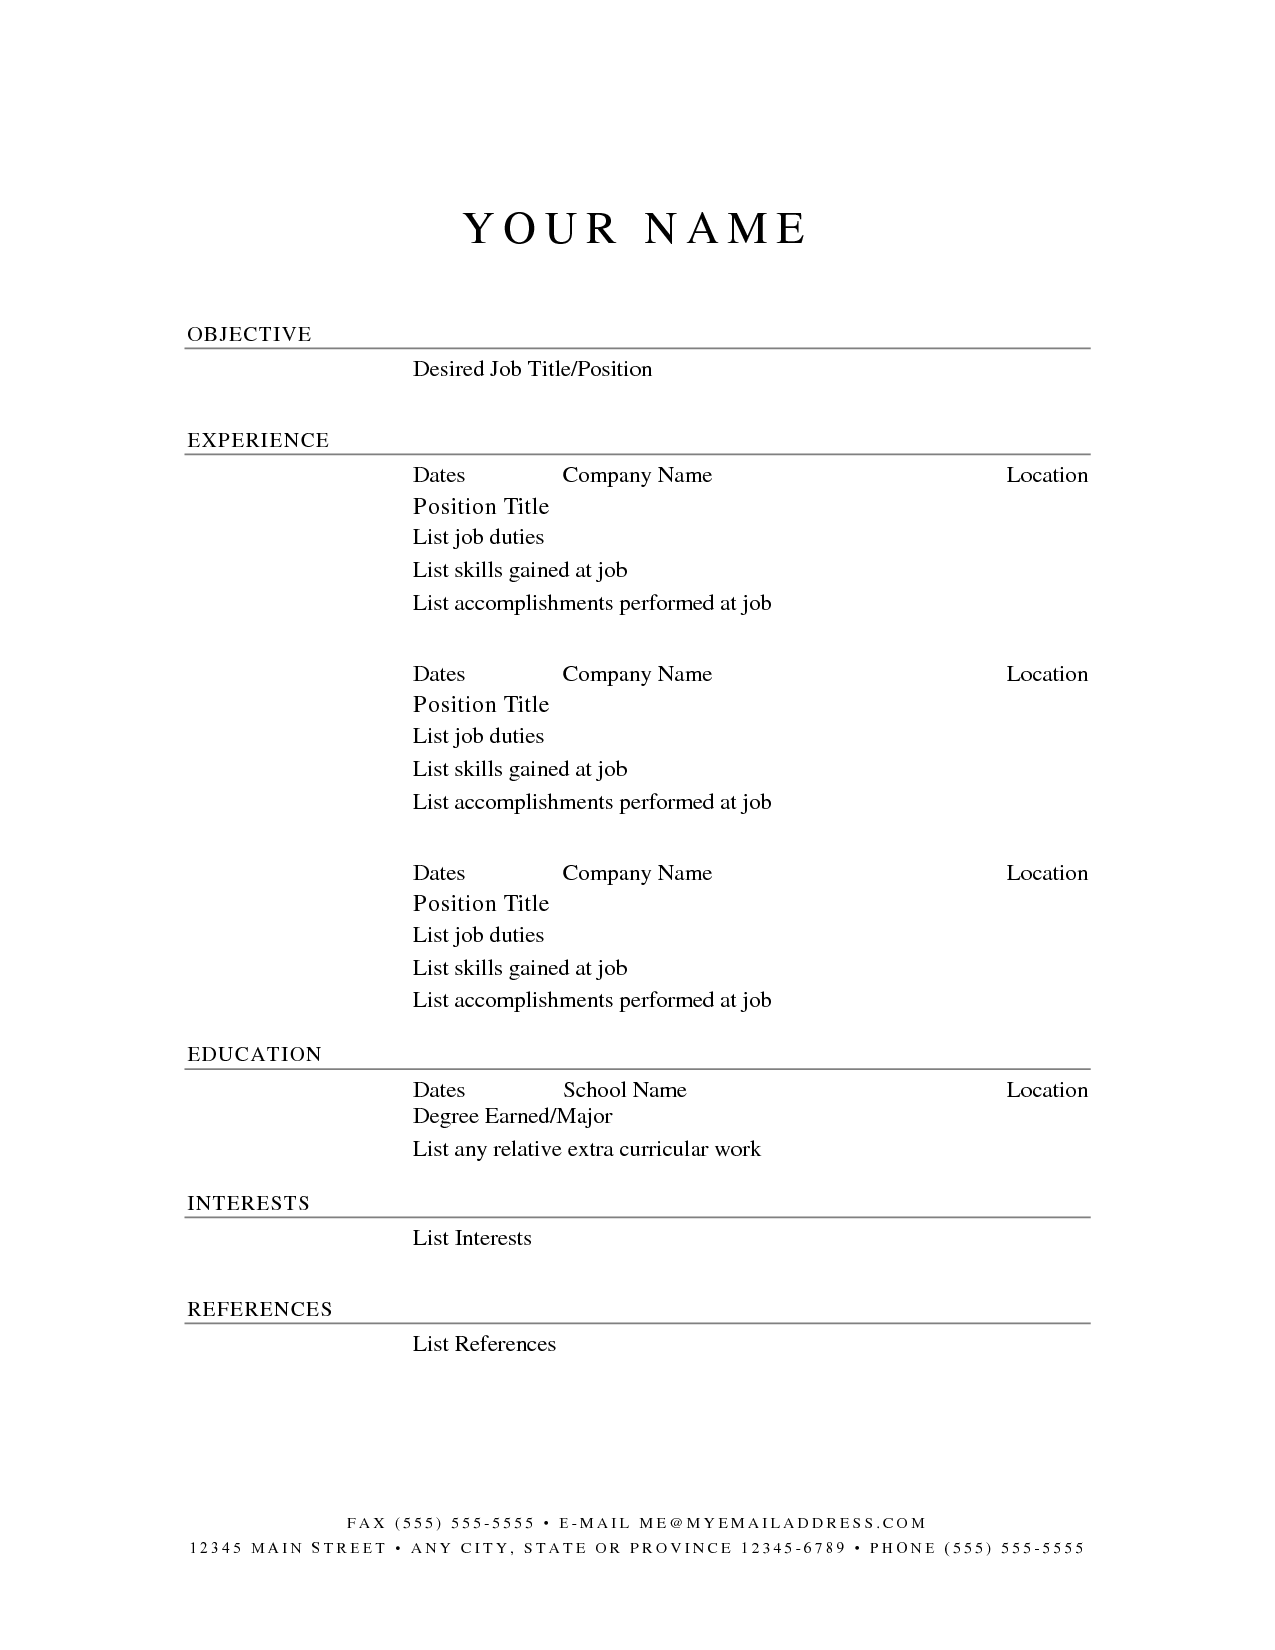 Printable Resume Templates | Free Printable Resume Template  Basic Resume Template